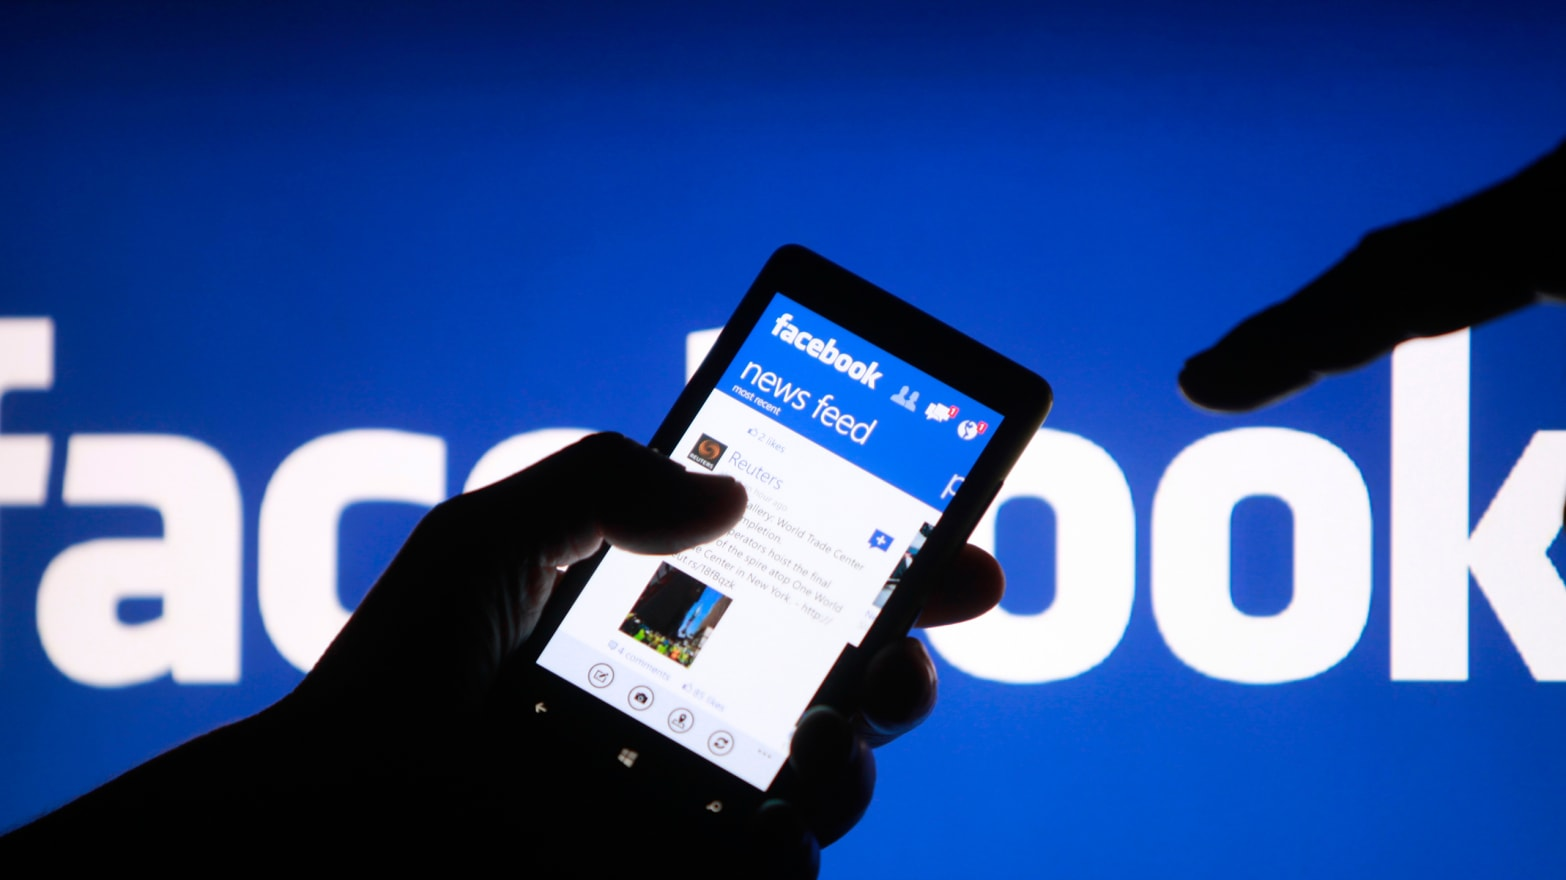 7 Hacks to Revolutionize Your Facebook Experience